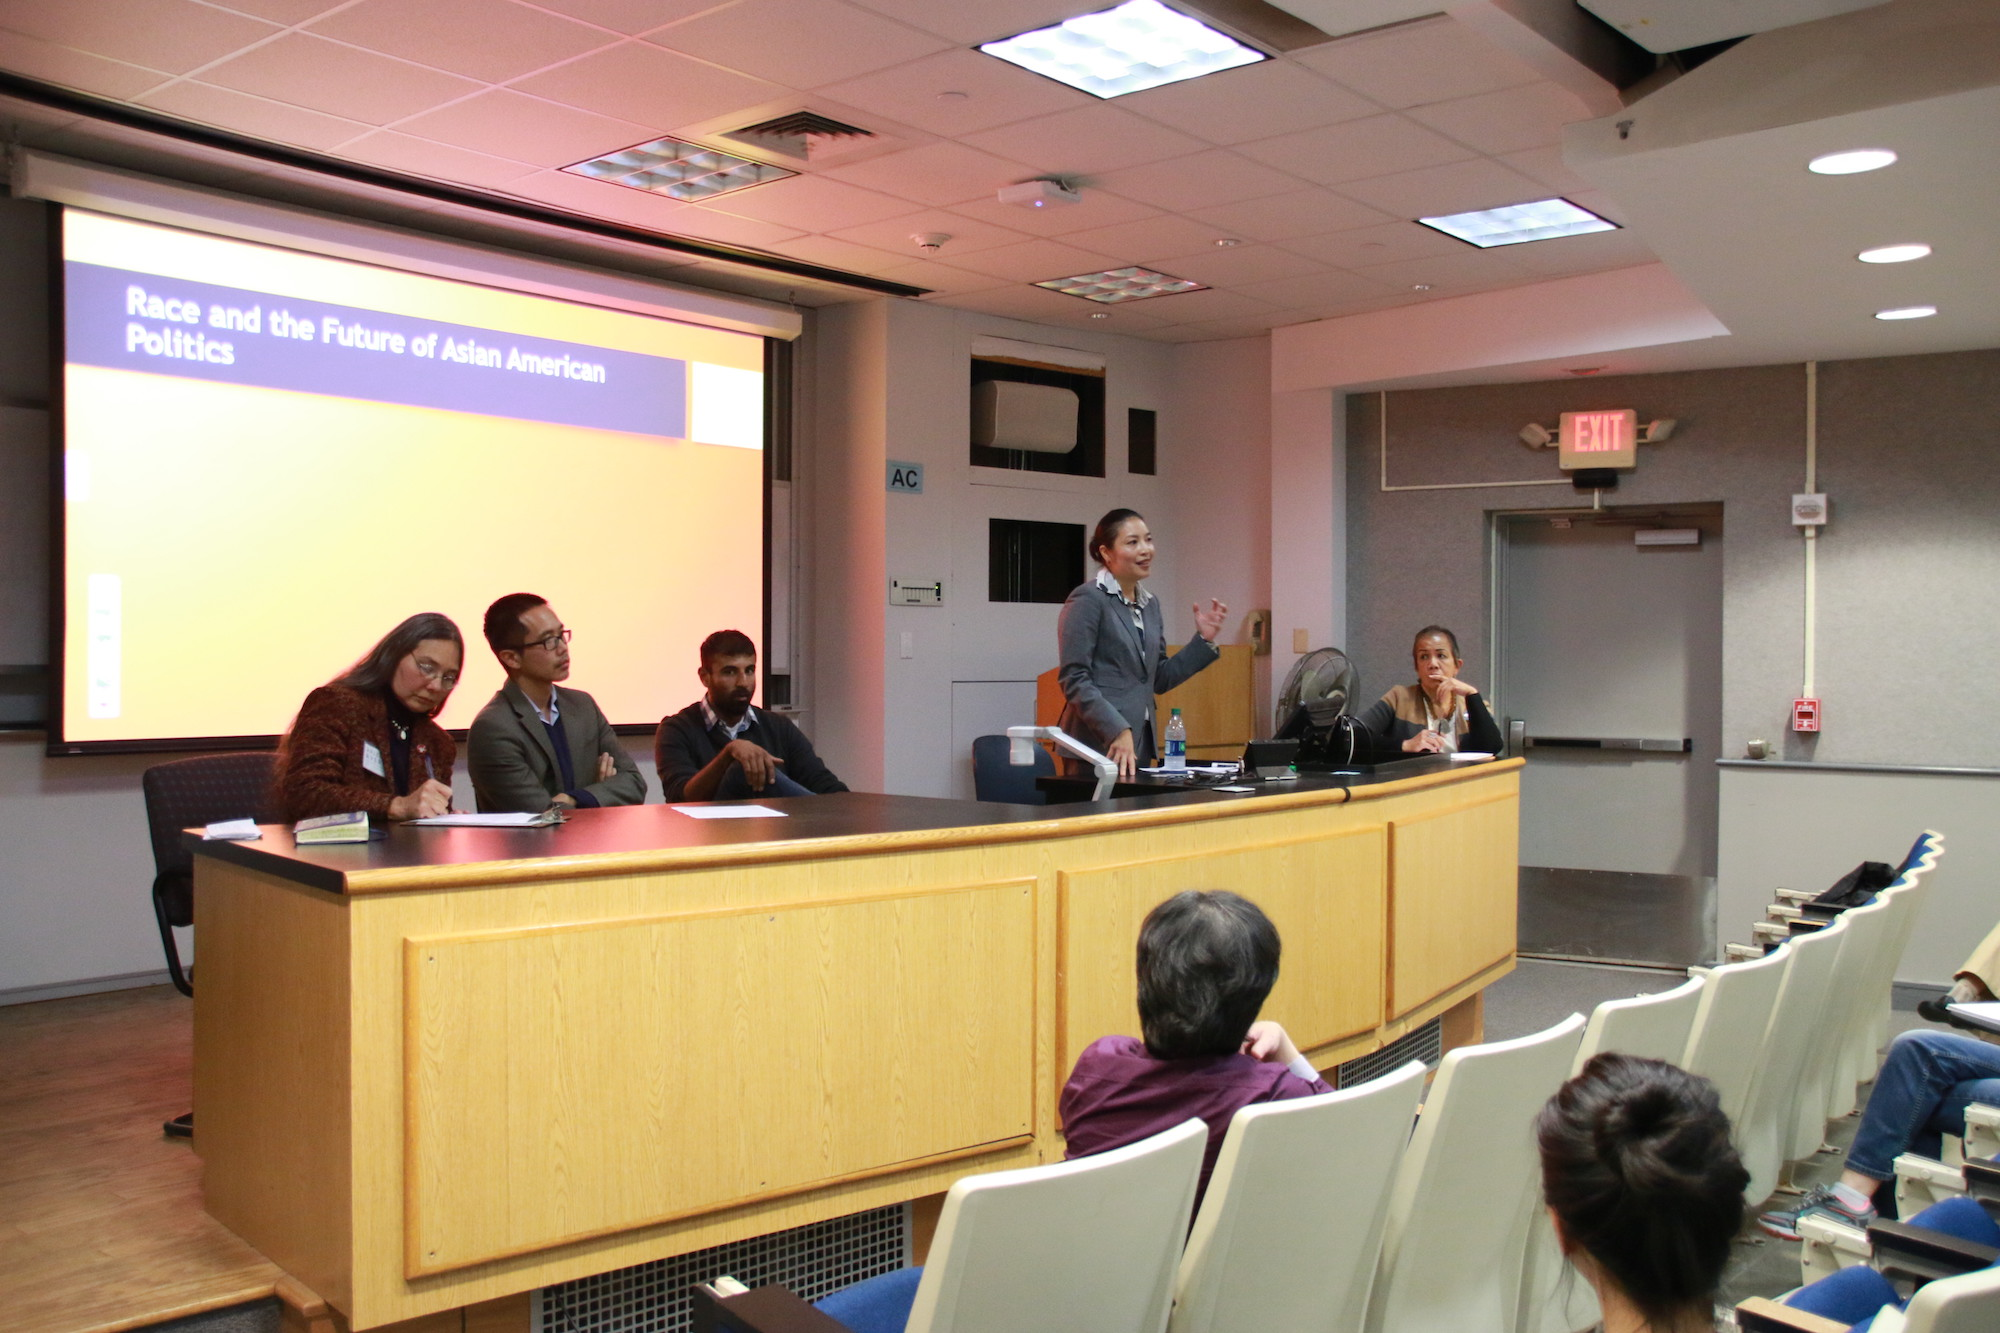 The Asian and Asian American Studies Institute organized a lecture about Asian American politics in Gentry 131 on Tuesday, Oct. 11, 2016. They invited Janette Wong from Asian American student program, university of Maryland to address a speech about race and the future of Asian American politics. (Yuwei Zhao/The Daily Campus)